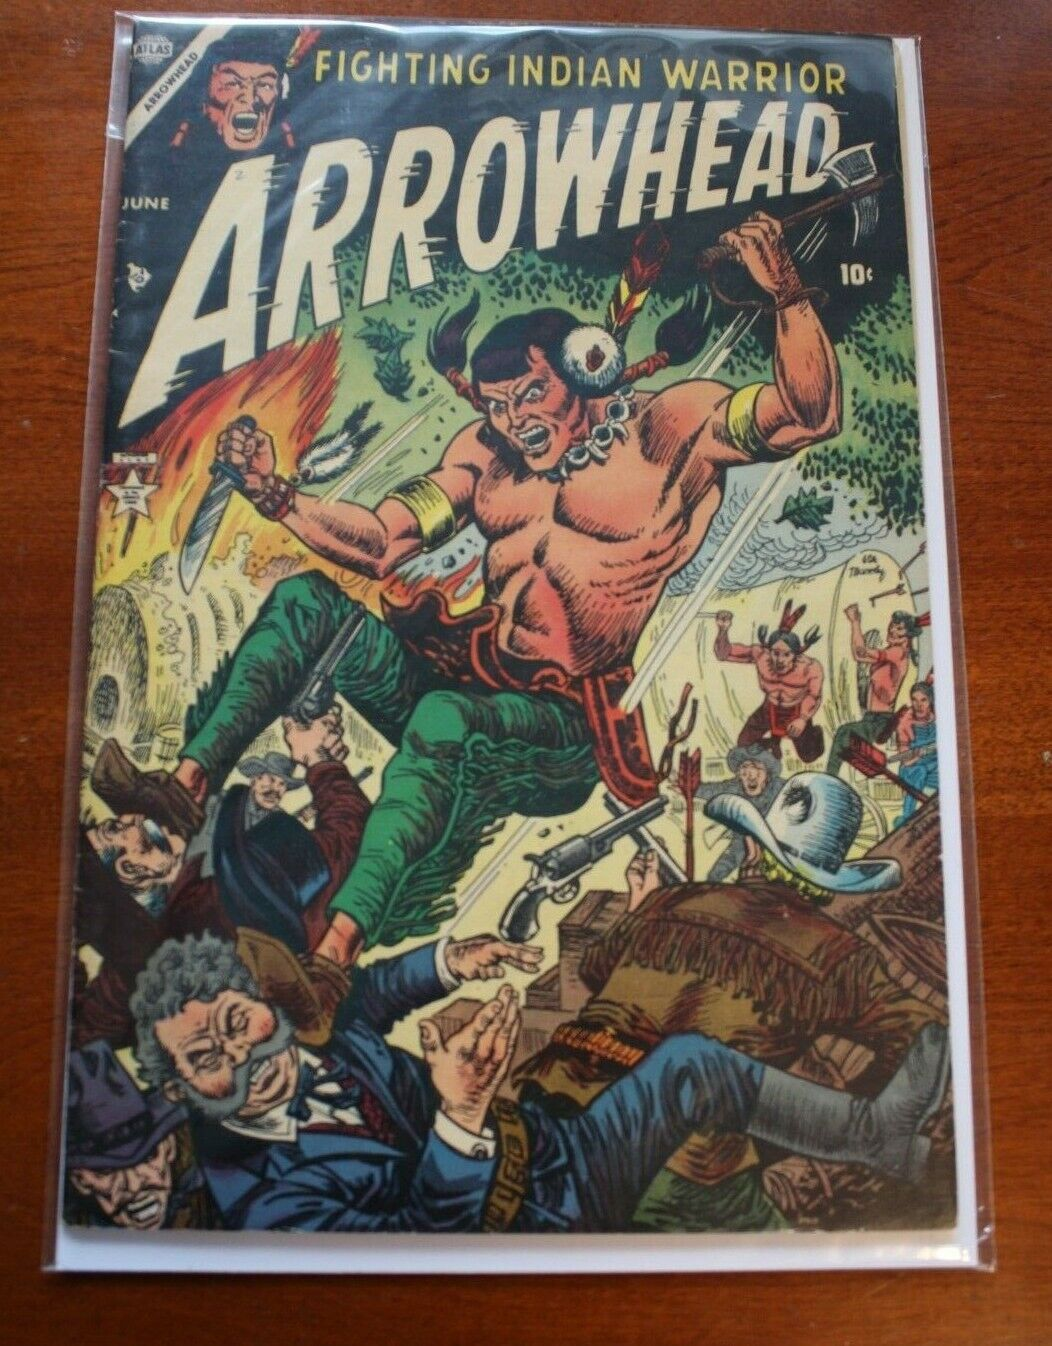 ARROWHEAD # 2 (1954) ATLAS WESTERN COMIC BOOK - Sinnott Art  - NICE !!!